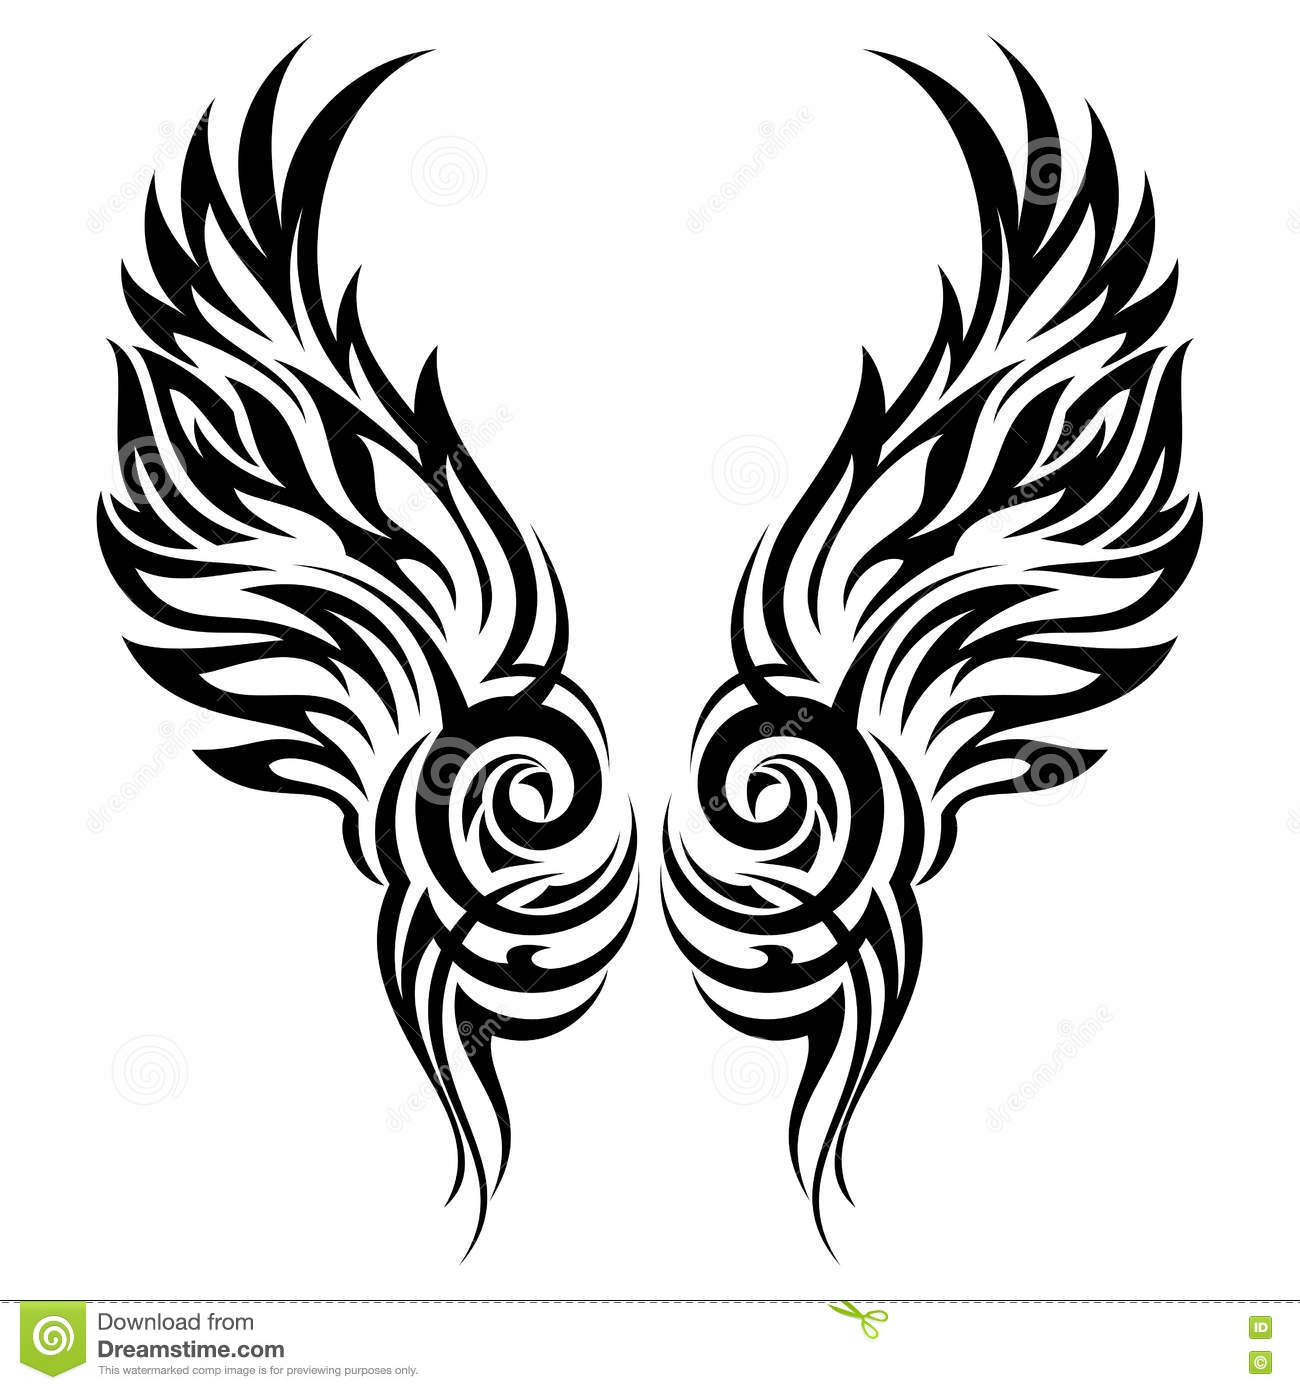 8118a9ee3f1c0 Flaming Wings Tribal Tattoo Stock Vector - Illustration of celtic ...